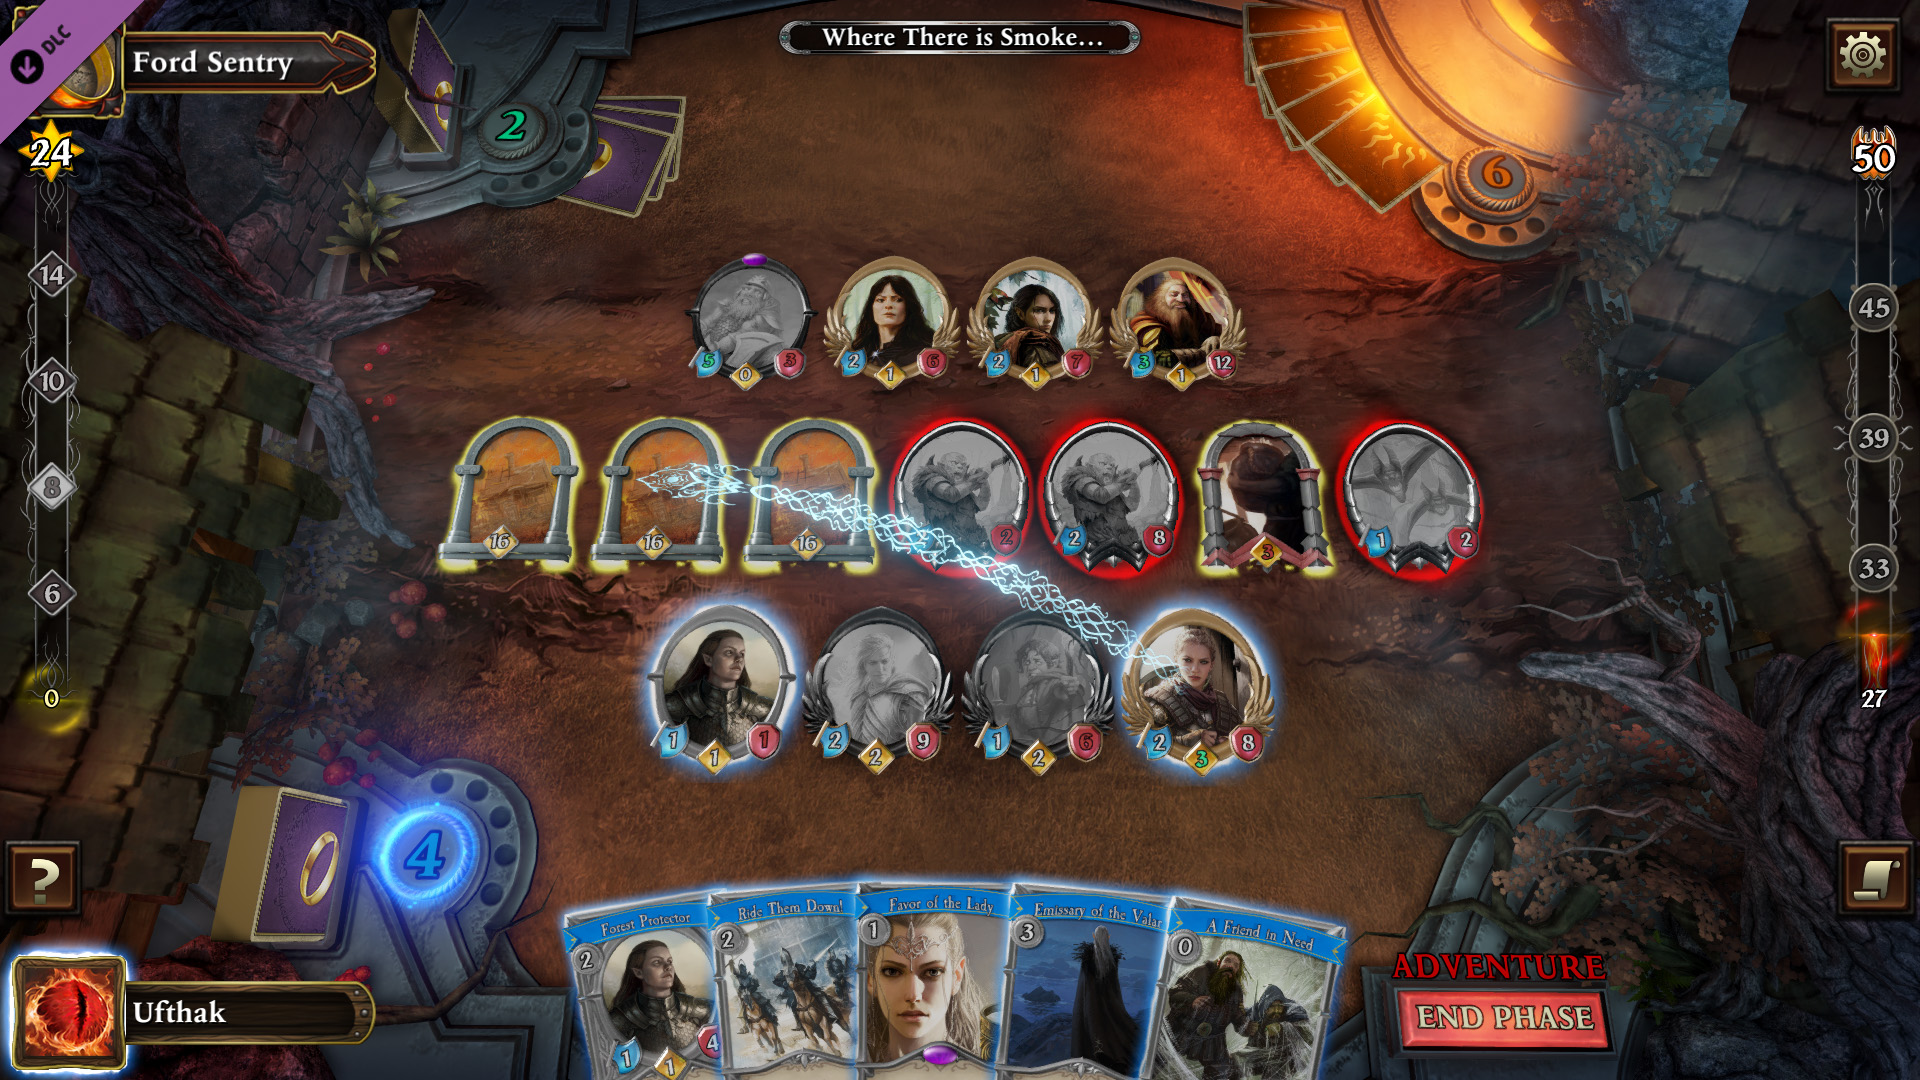 An in-game screenshot showing the use of identity frame and card back assets.